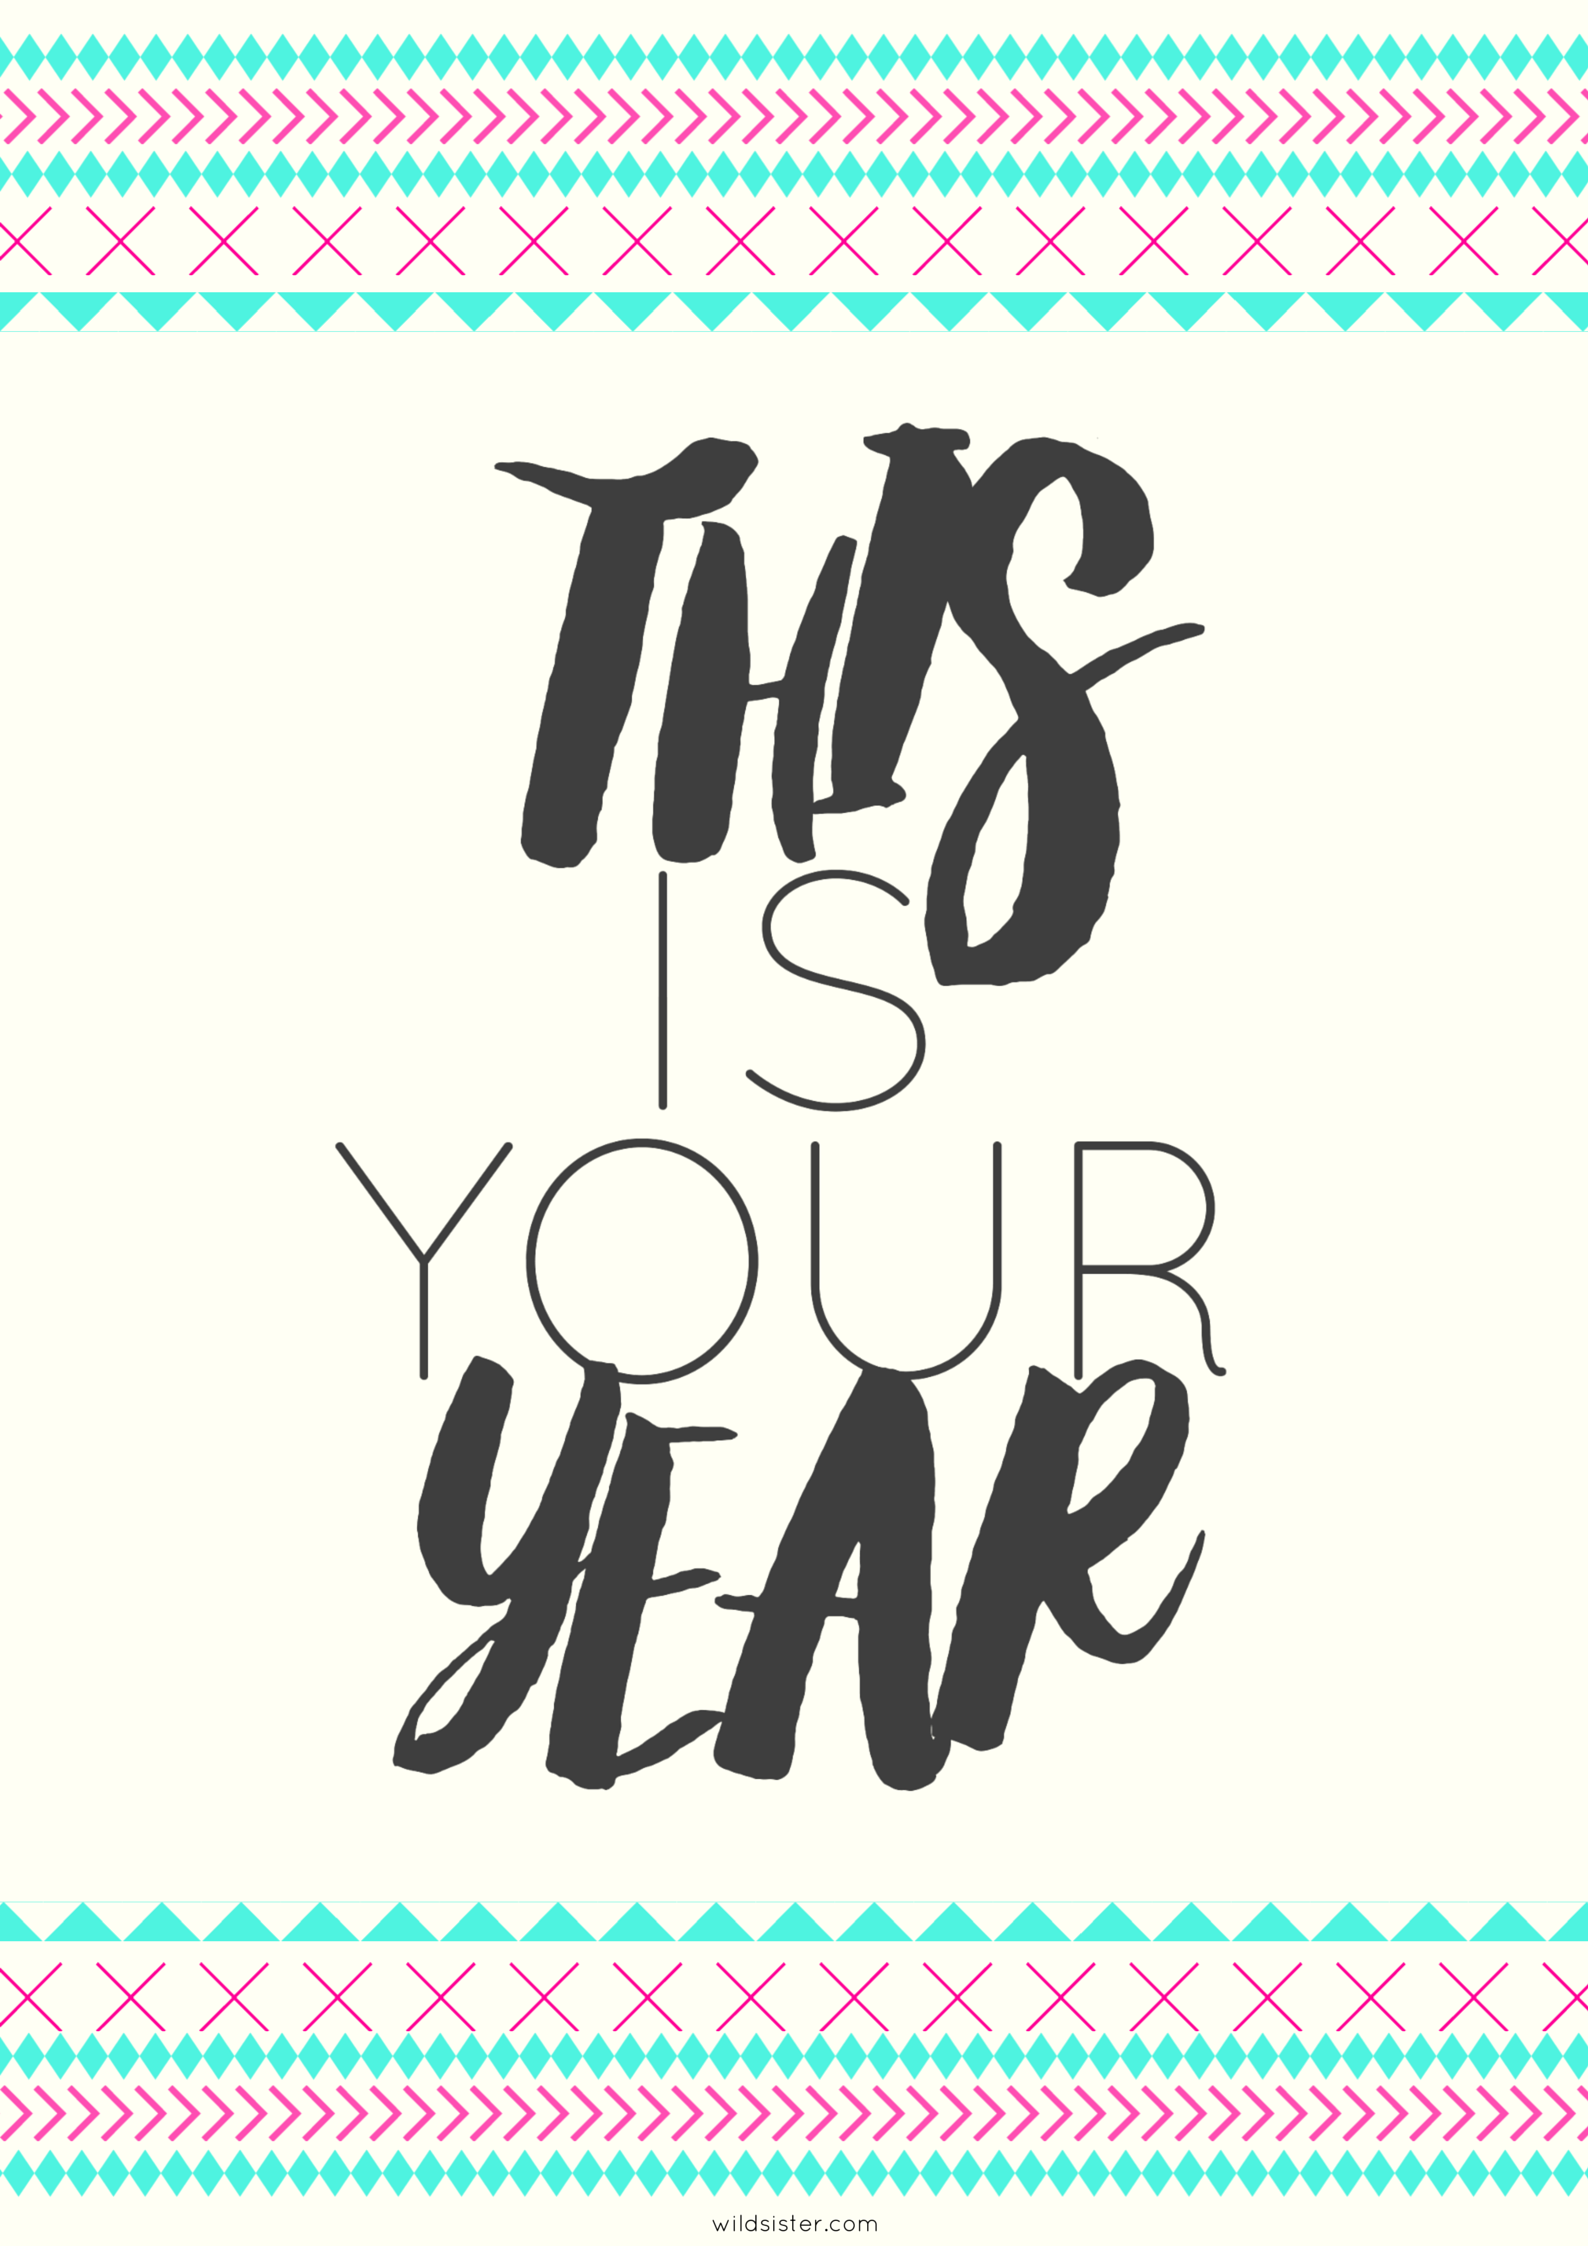 Wild Sister\'s Free Download for your 2015 vision board. Love ...